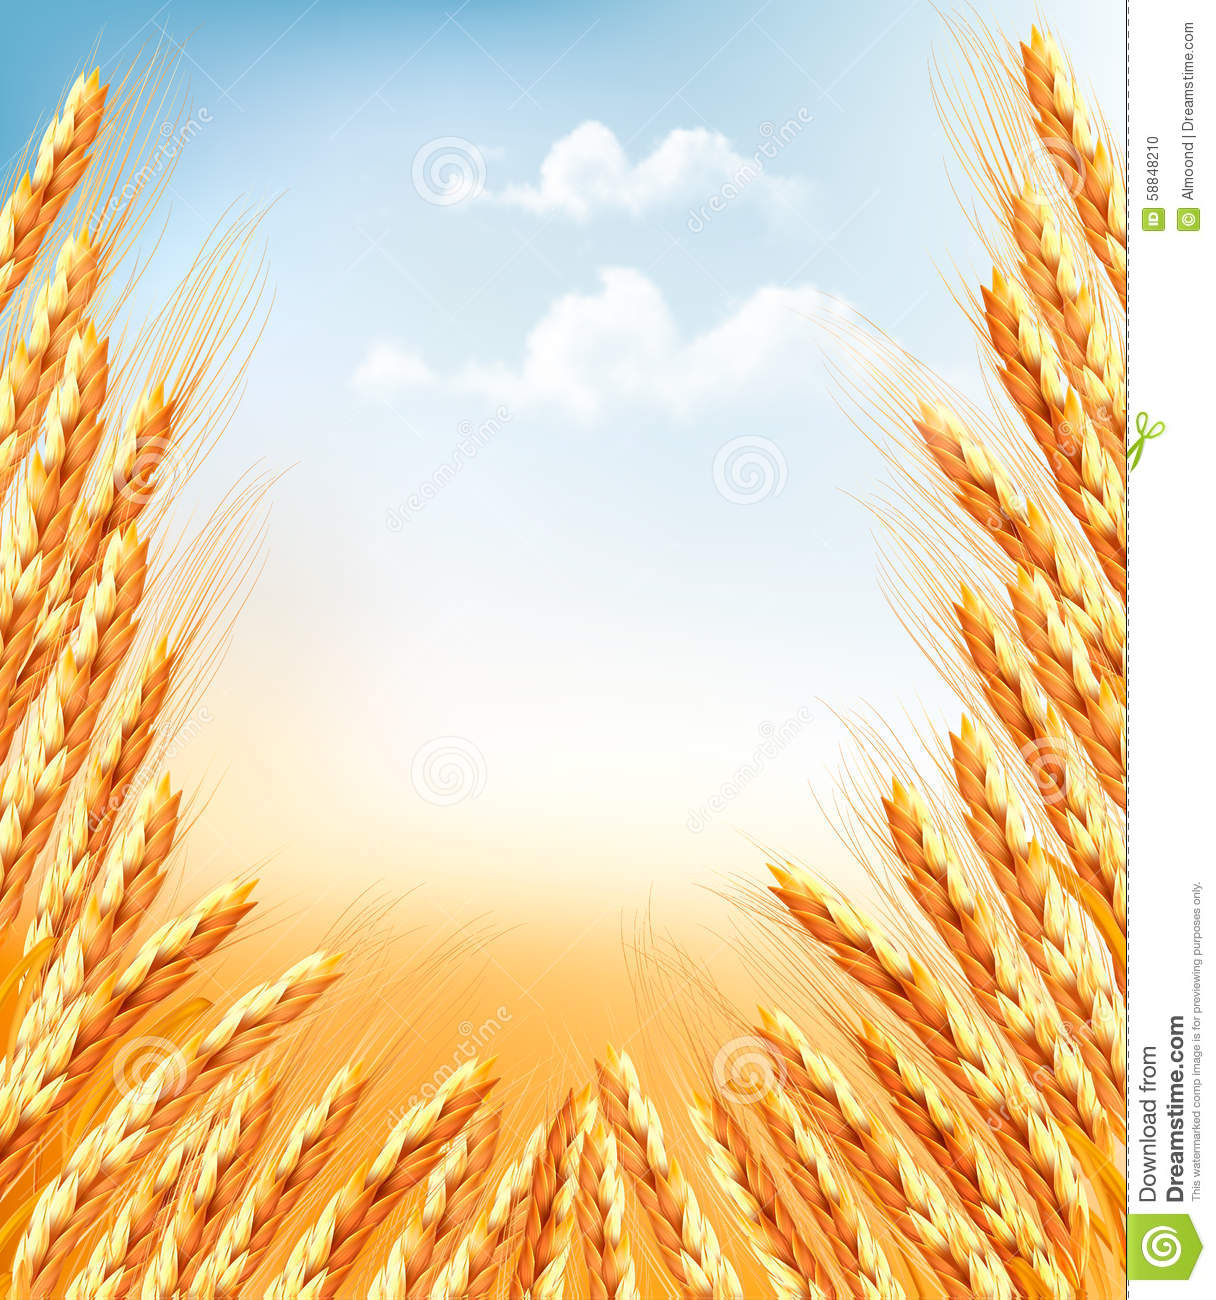 Ears of wheat background. stock vector. Illustration of ...